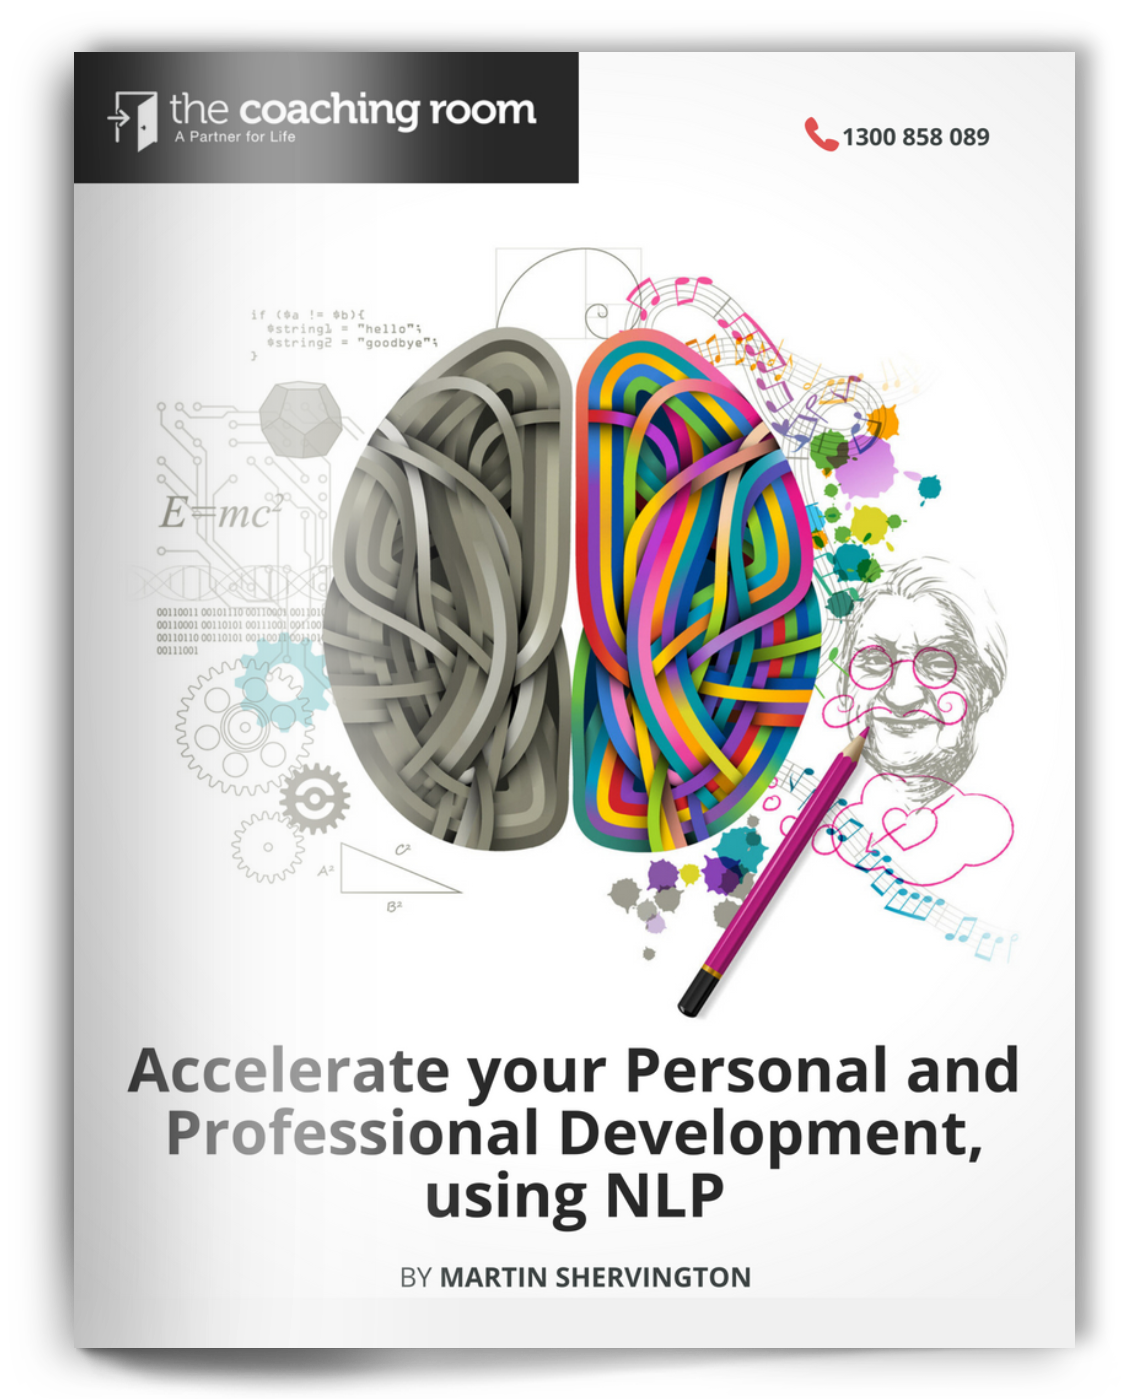 Accelerate your Personal and Professional Development.png